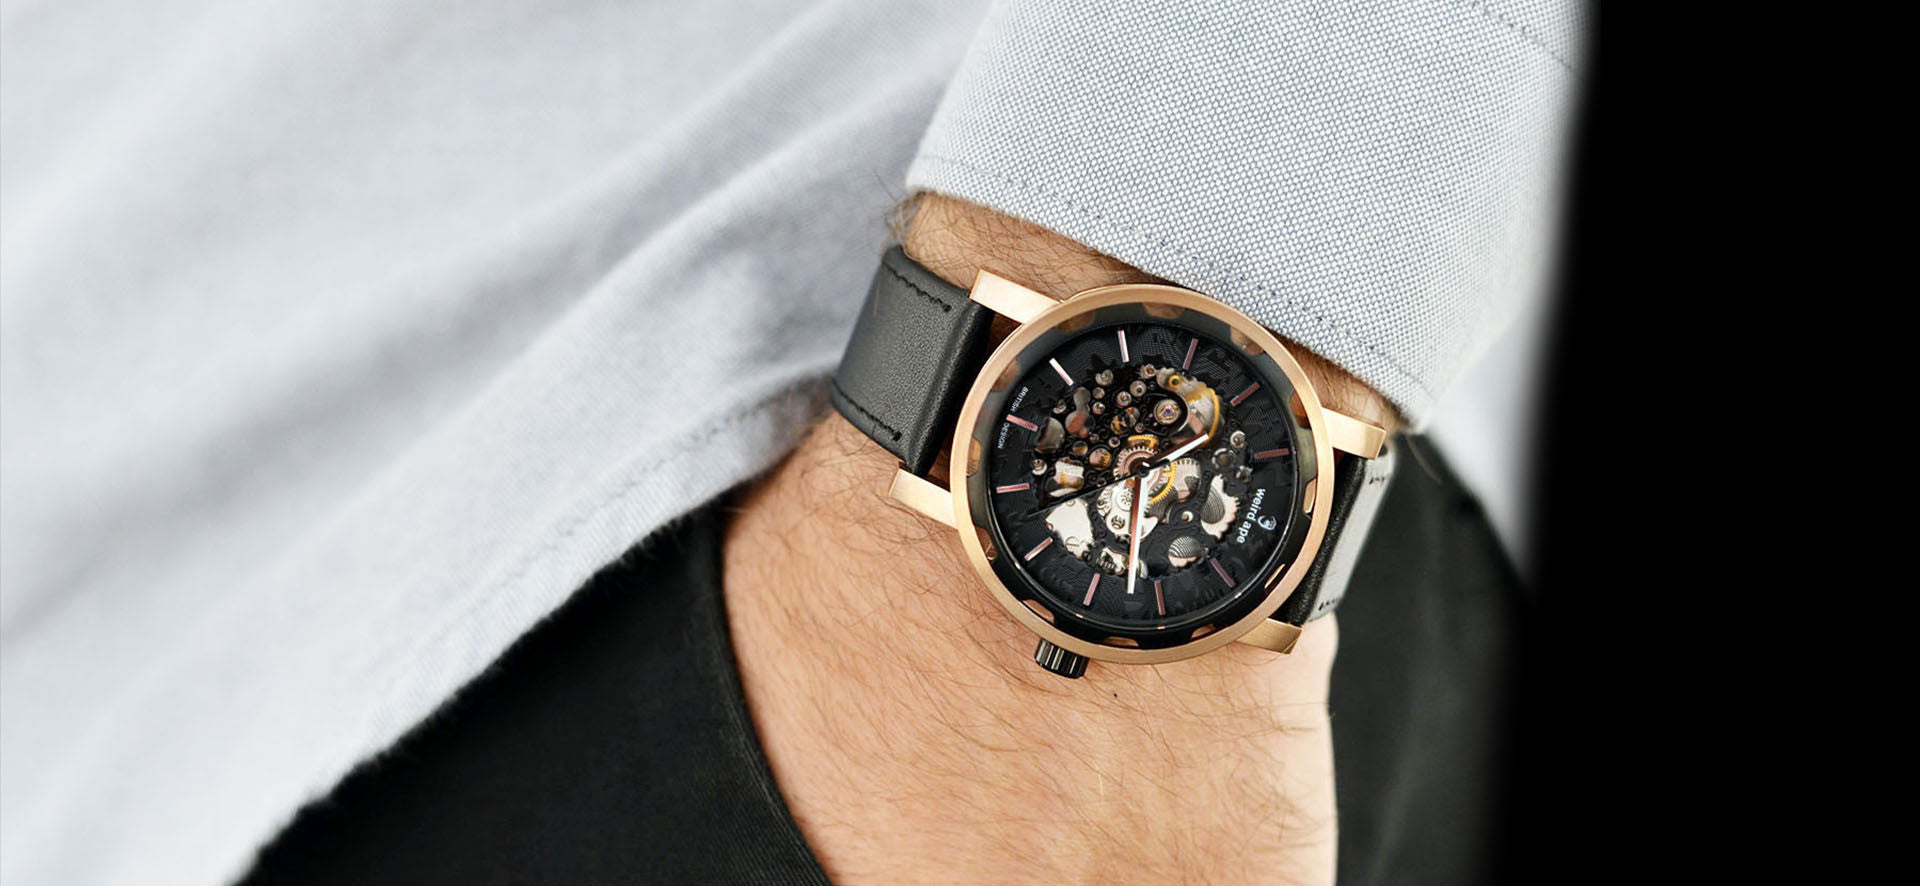 Rose Gold skeleton watch with black strap in a lifestyle image